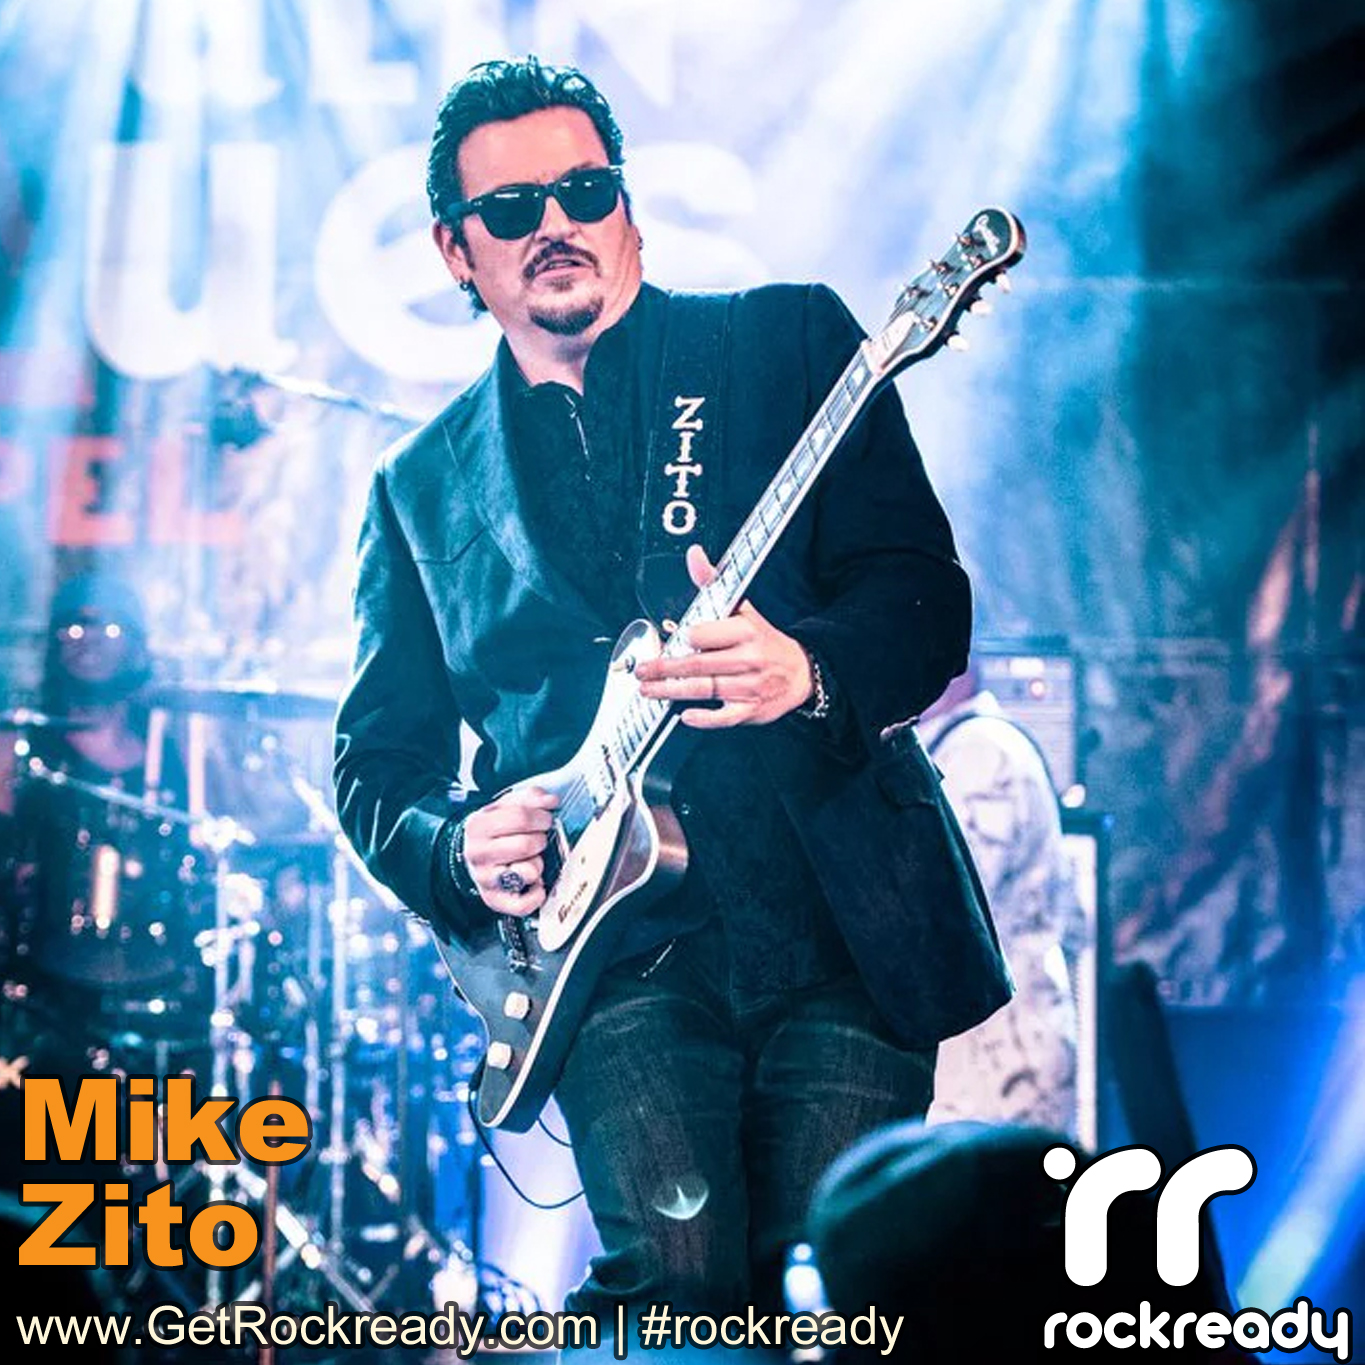 Mike Zito Rockready endorsee